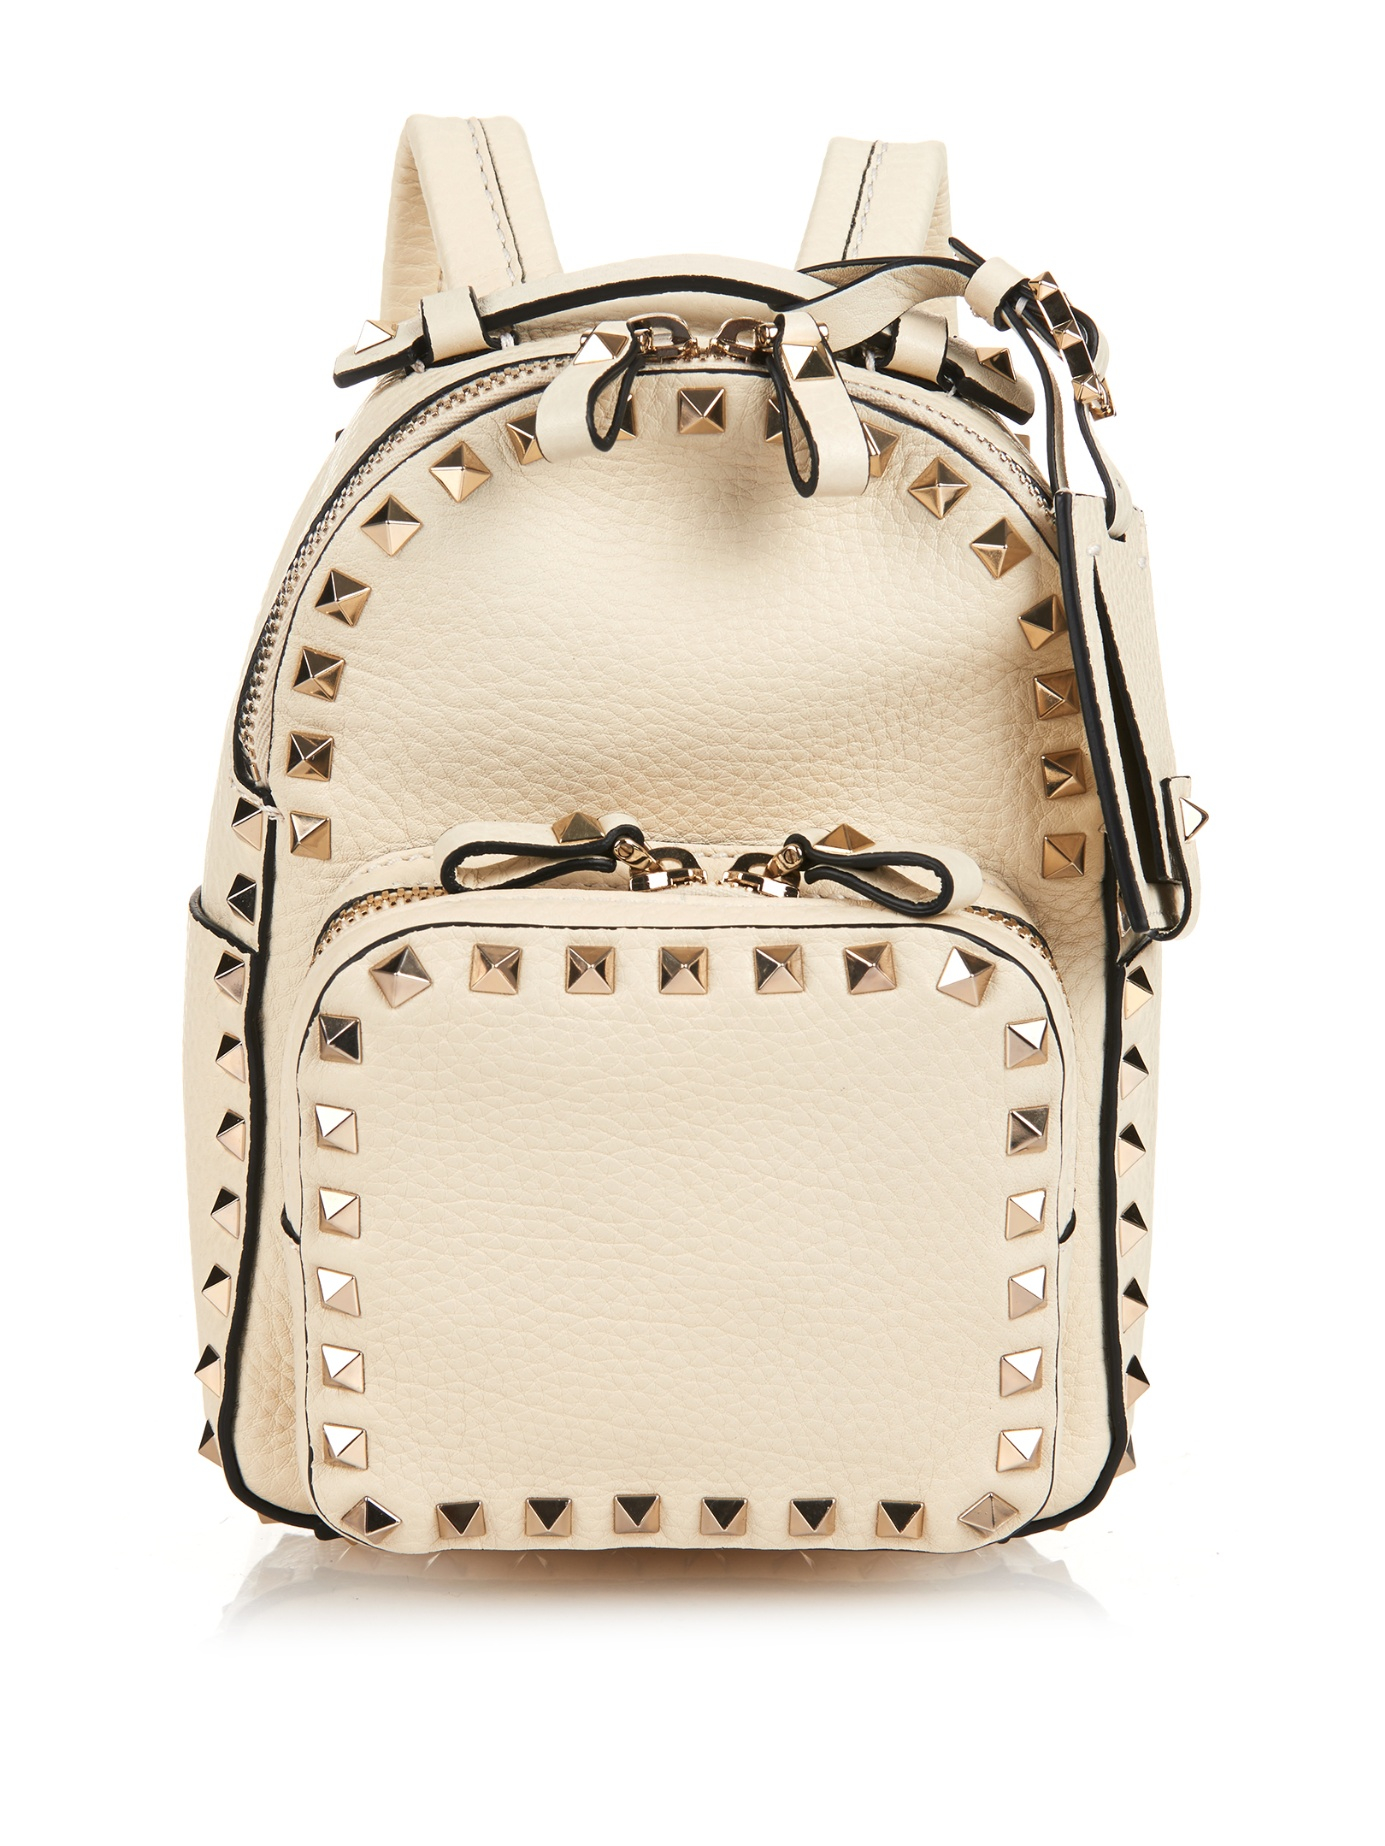 65964c4b63 Valentino Rockstud Leather Mini Backpack in White - Lyst